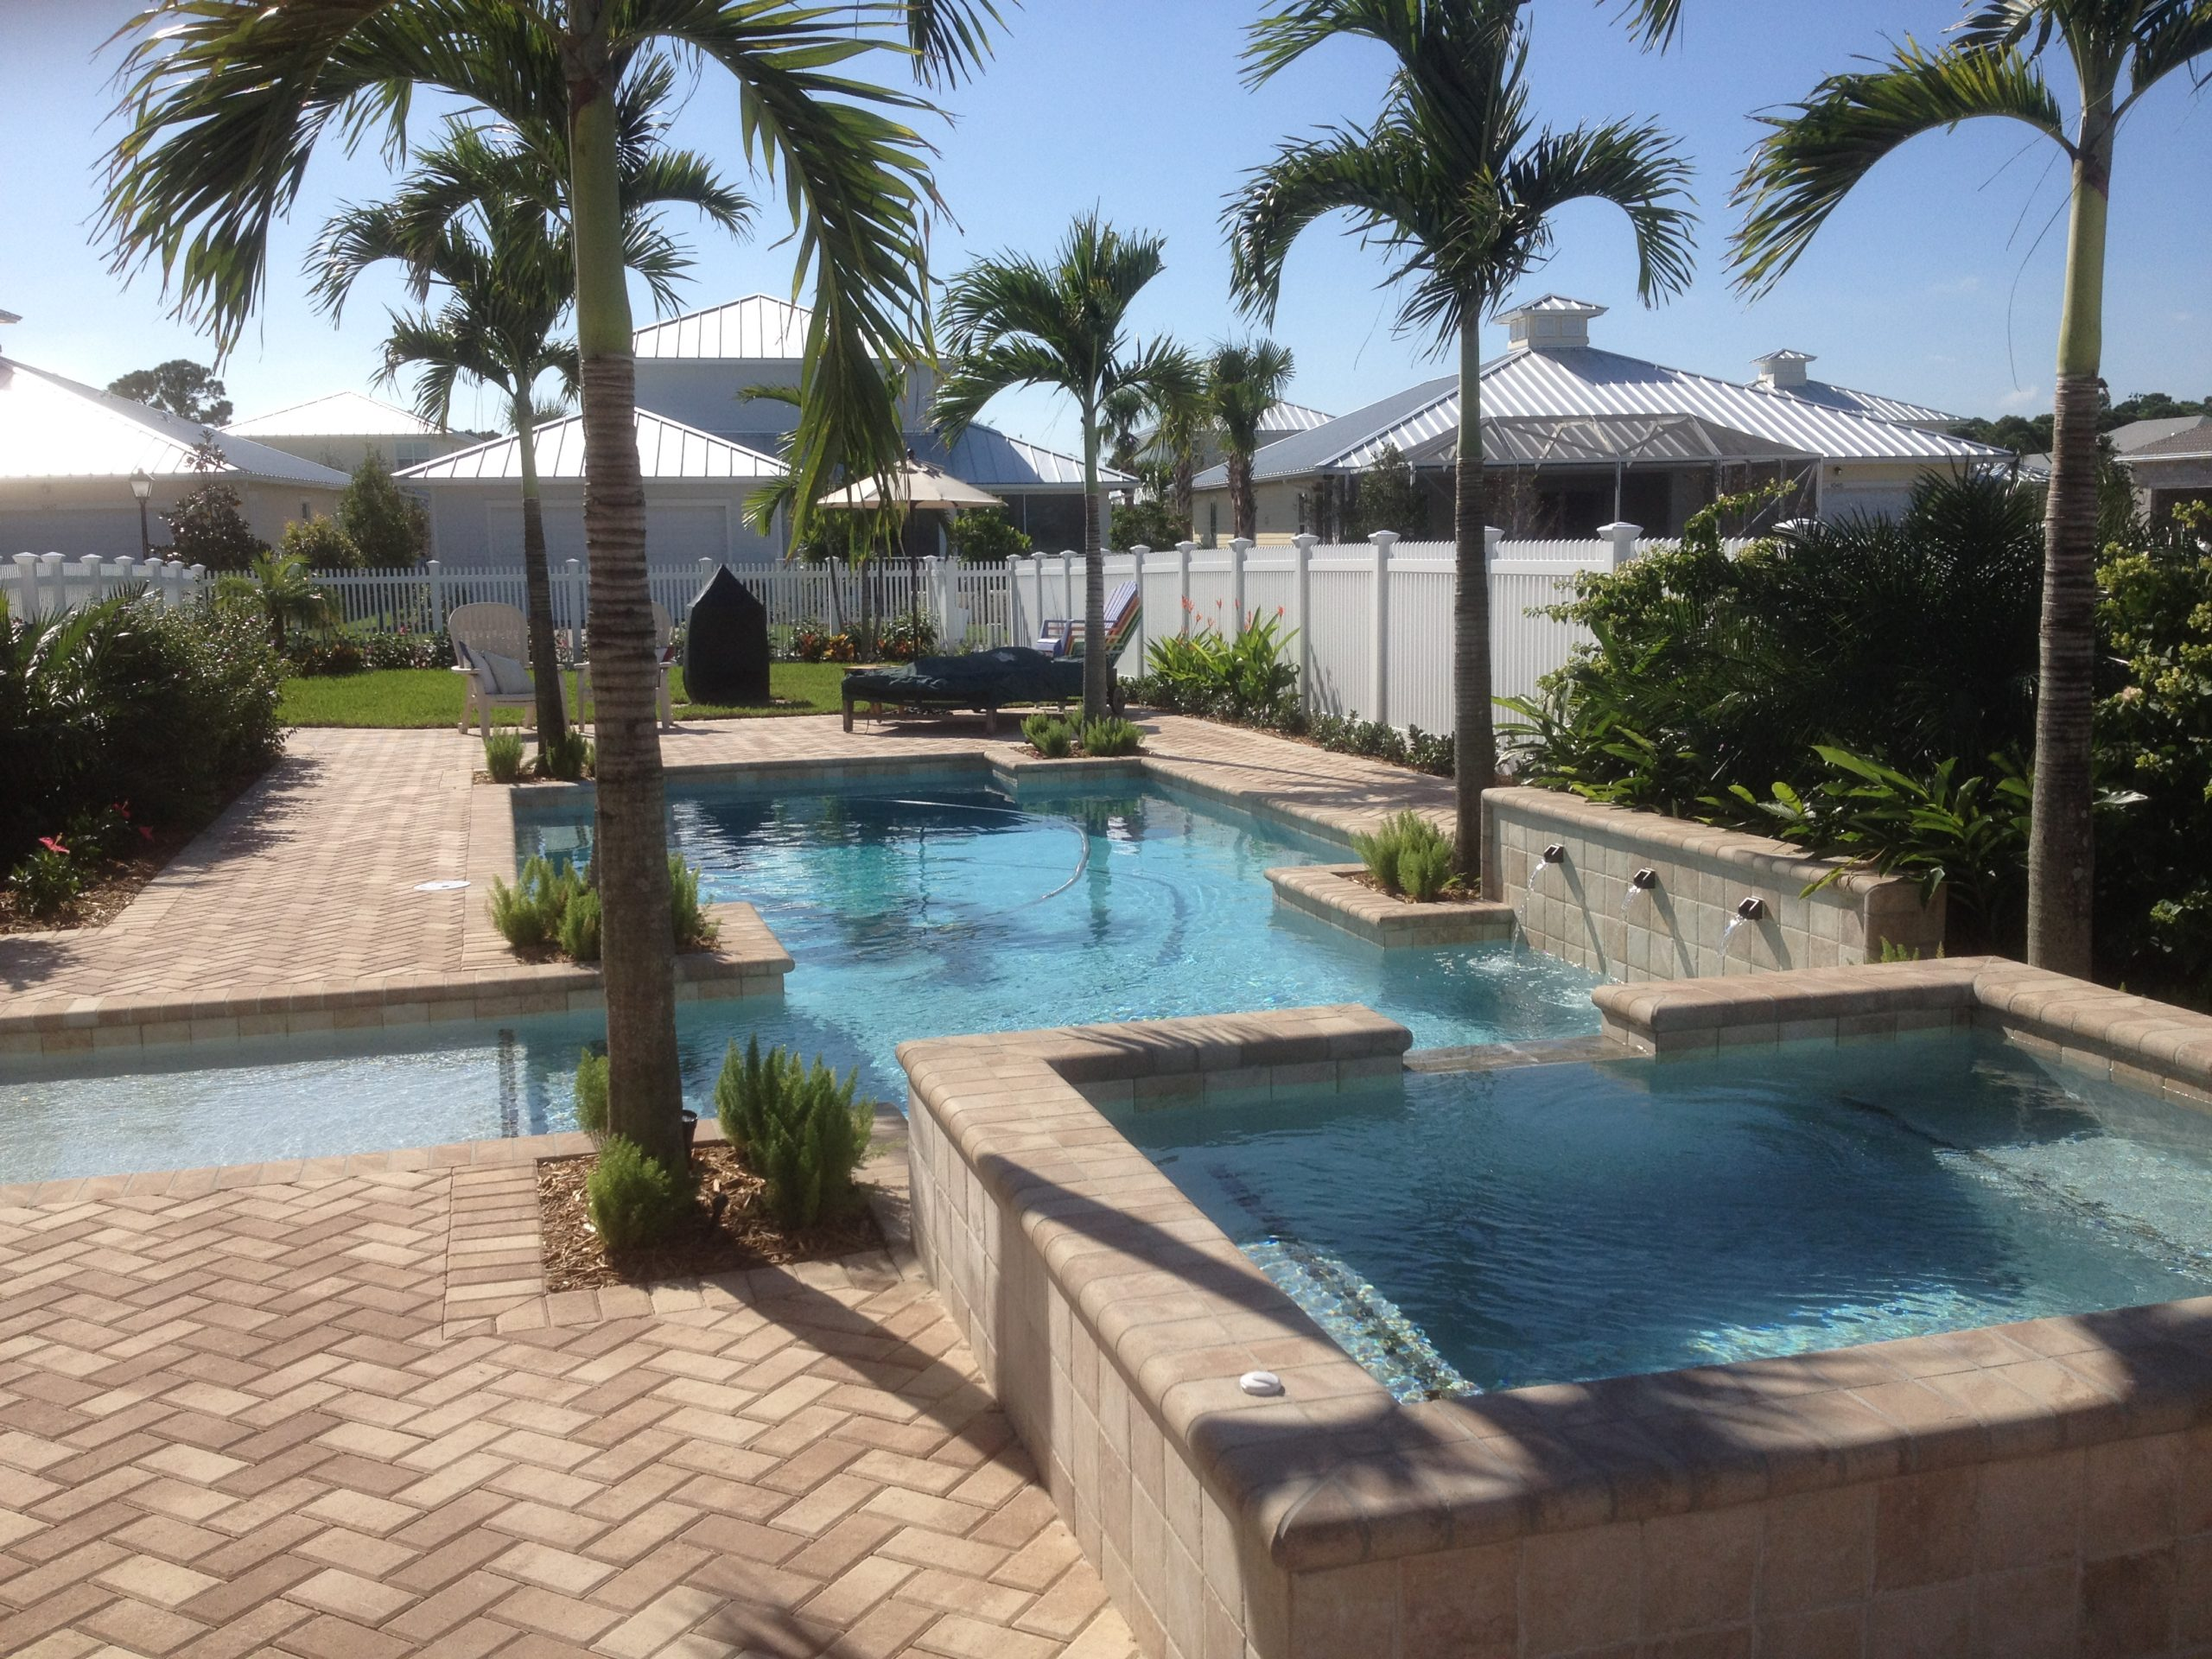 rhr pools of jupiter fl custom pool with raised wall and waterfeatures and spa